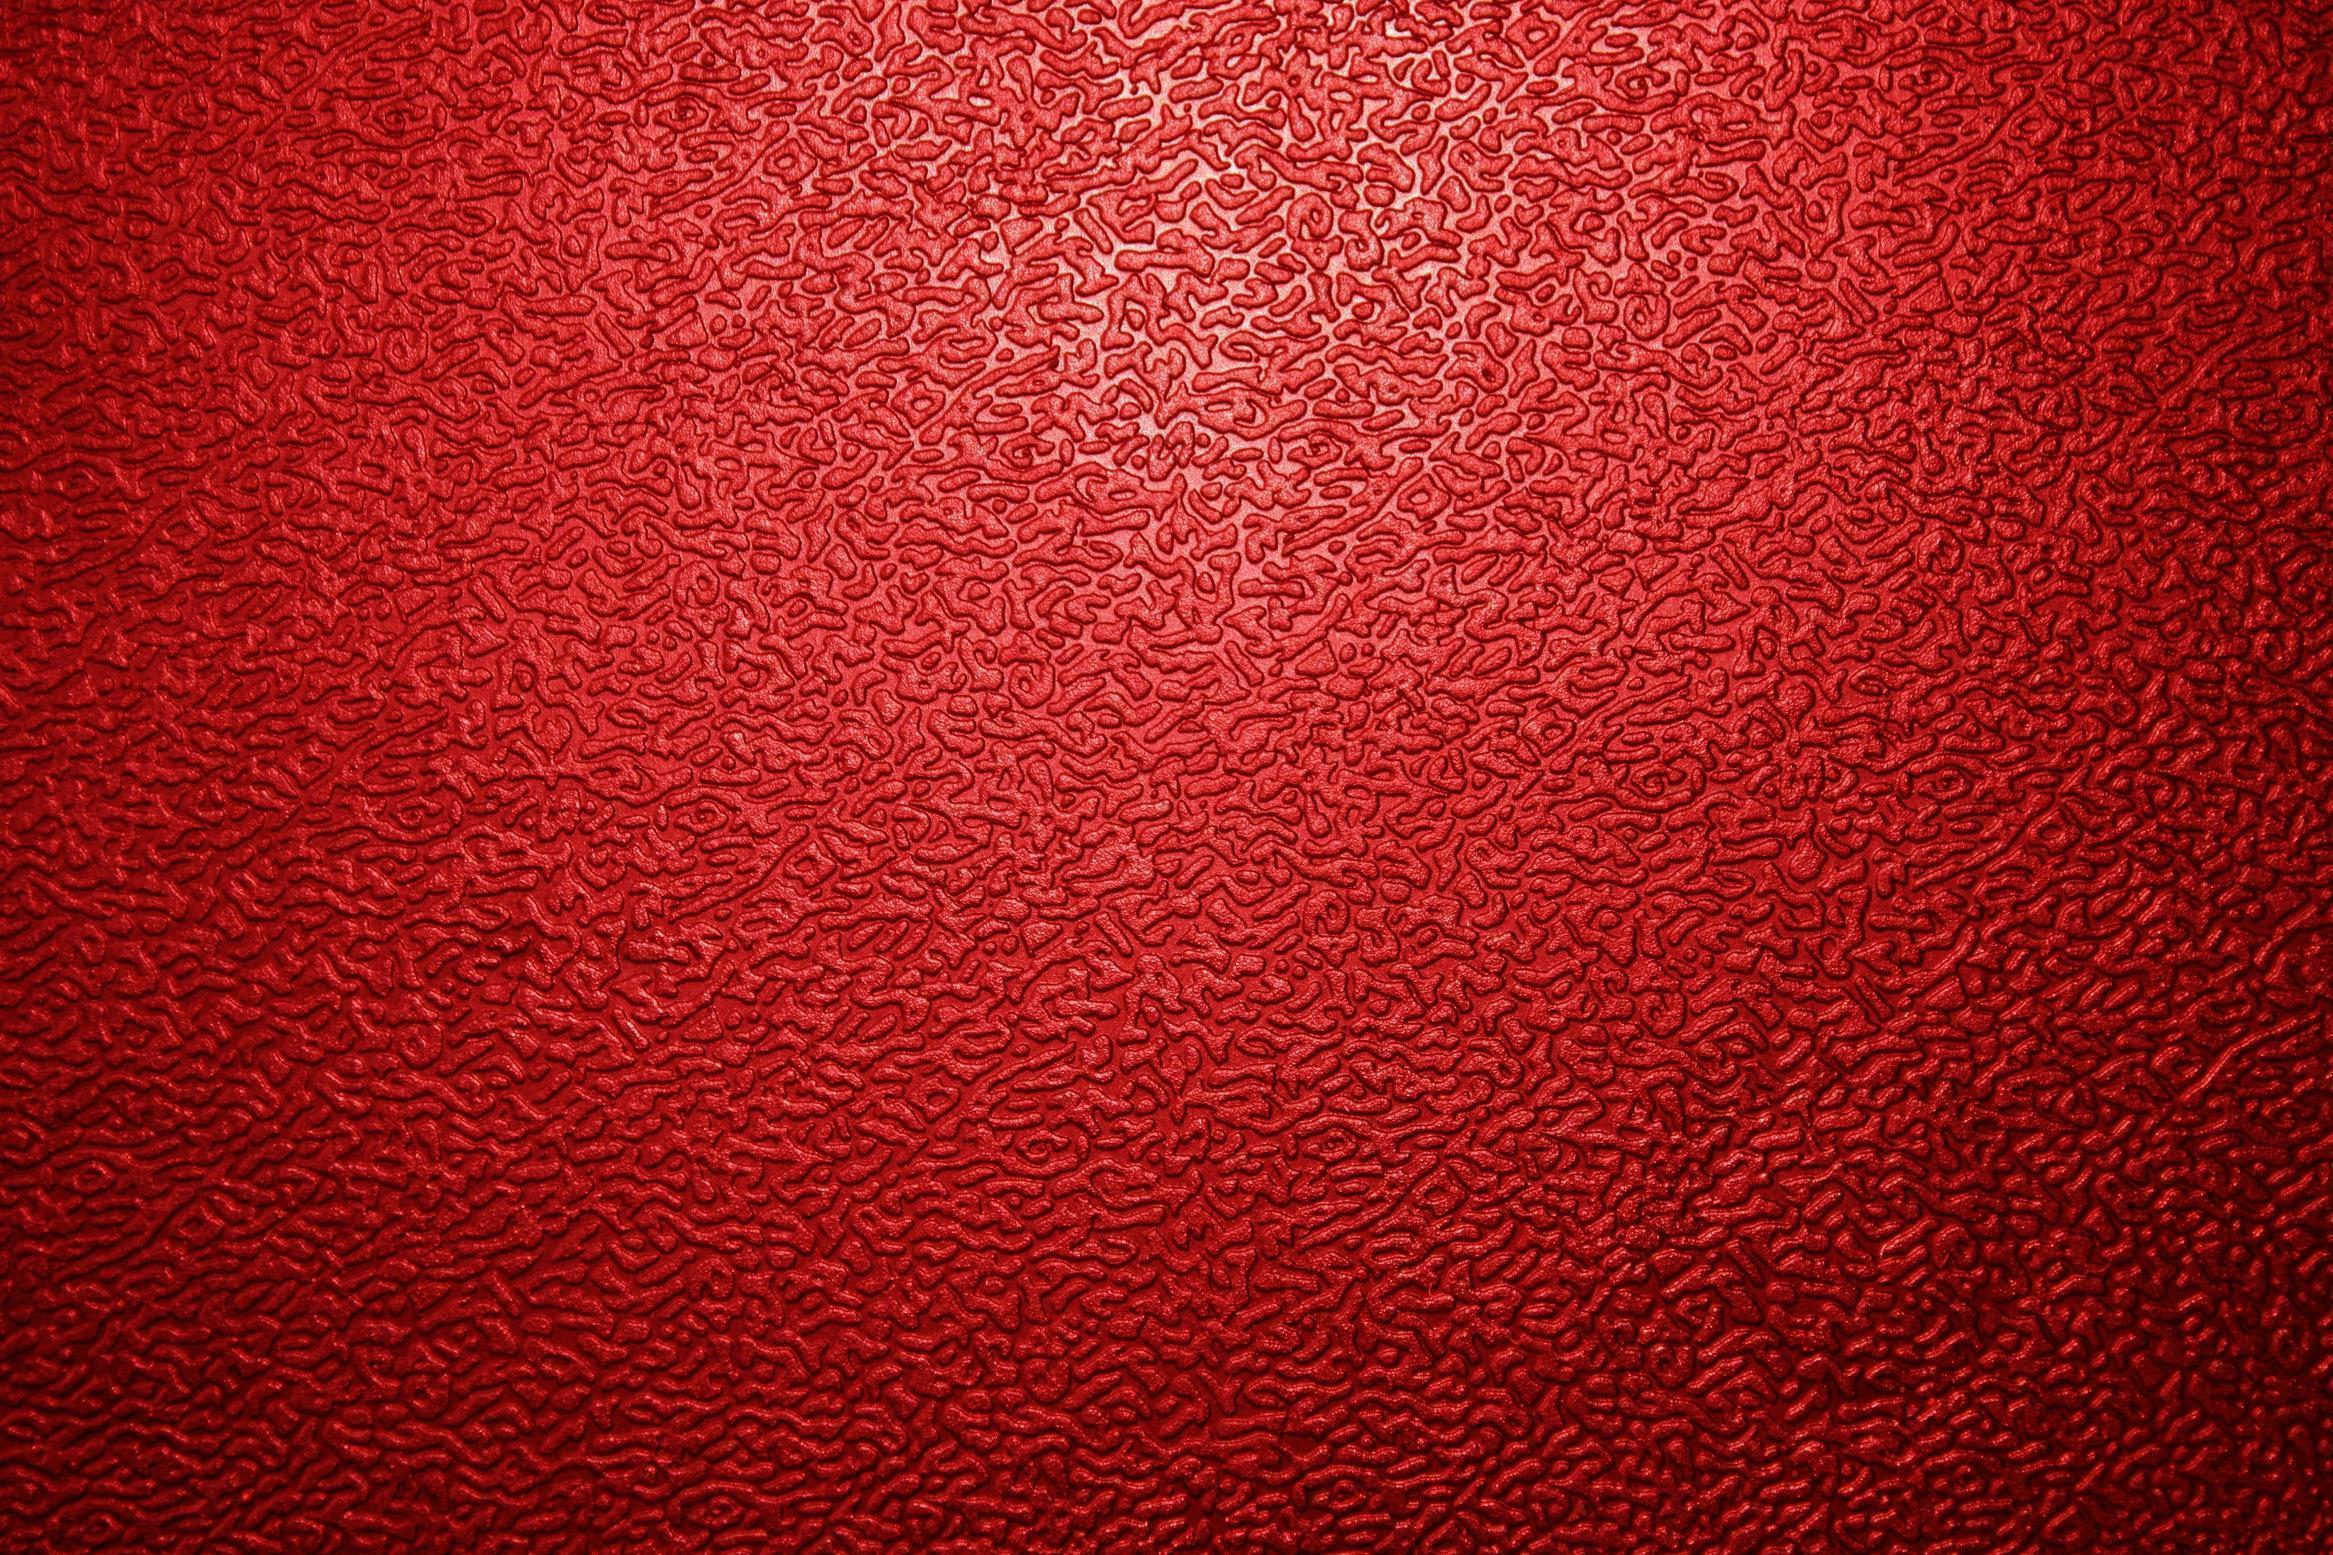 red textured background hd - photo #6